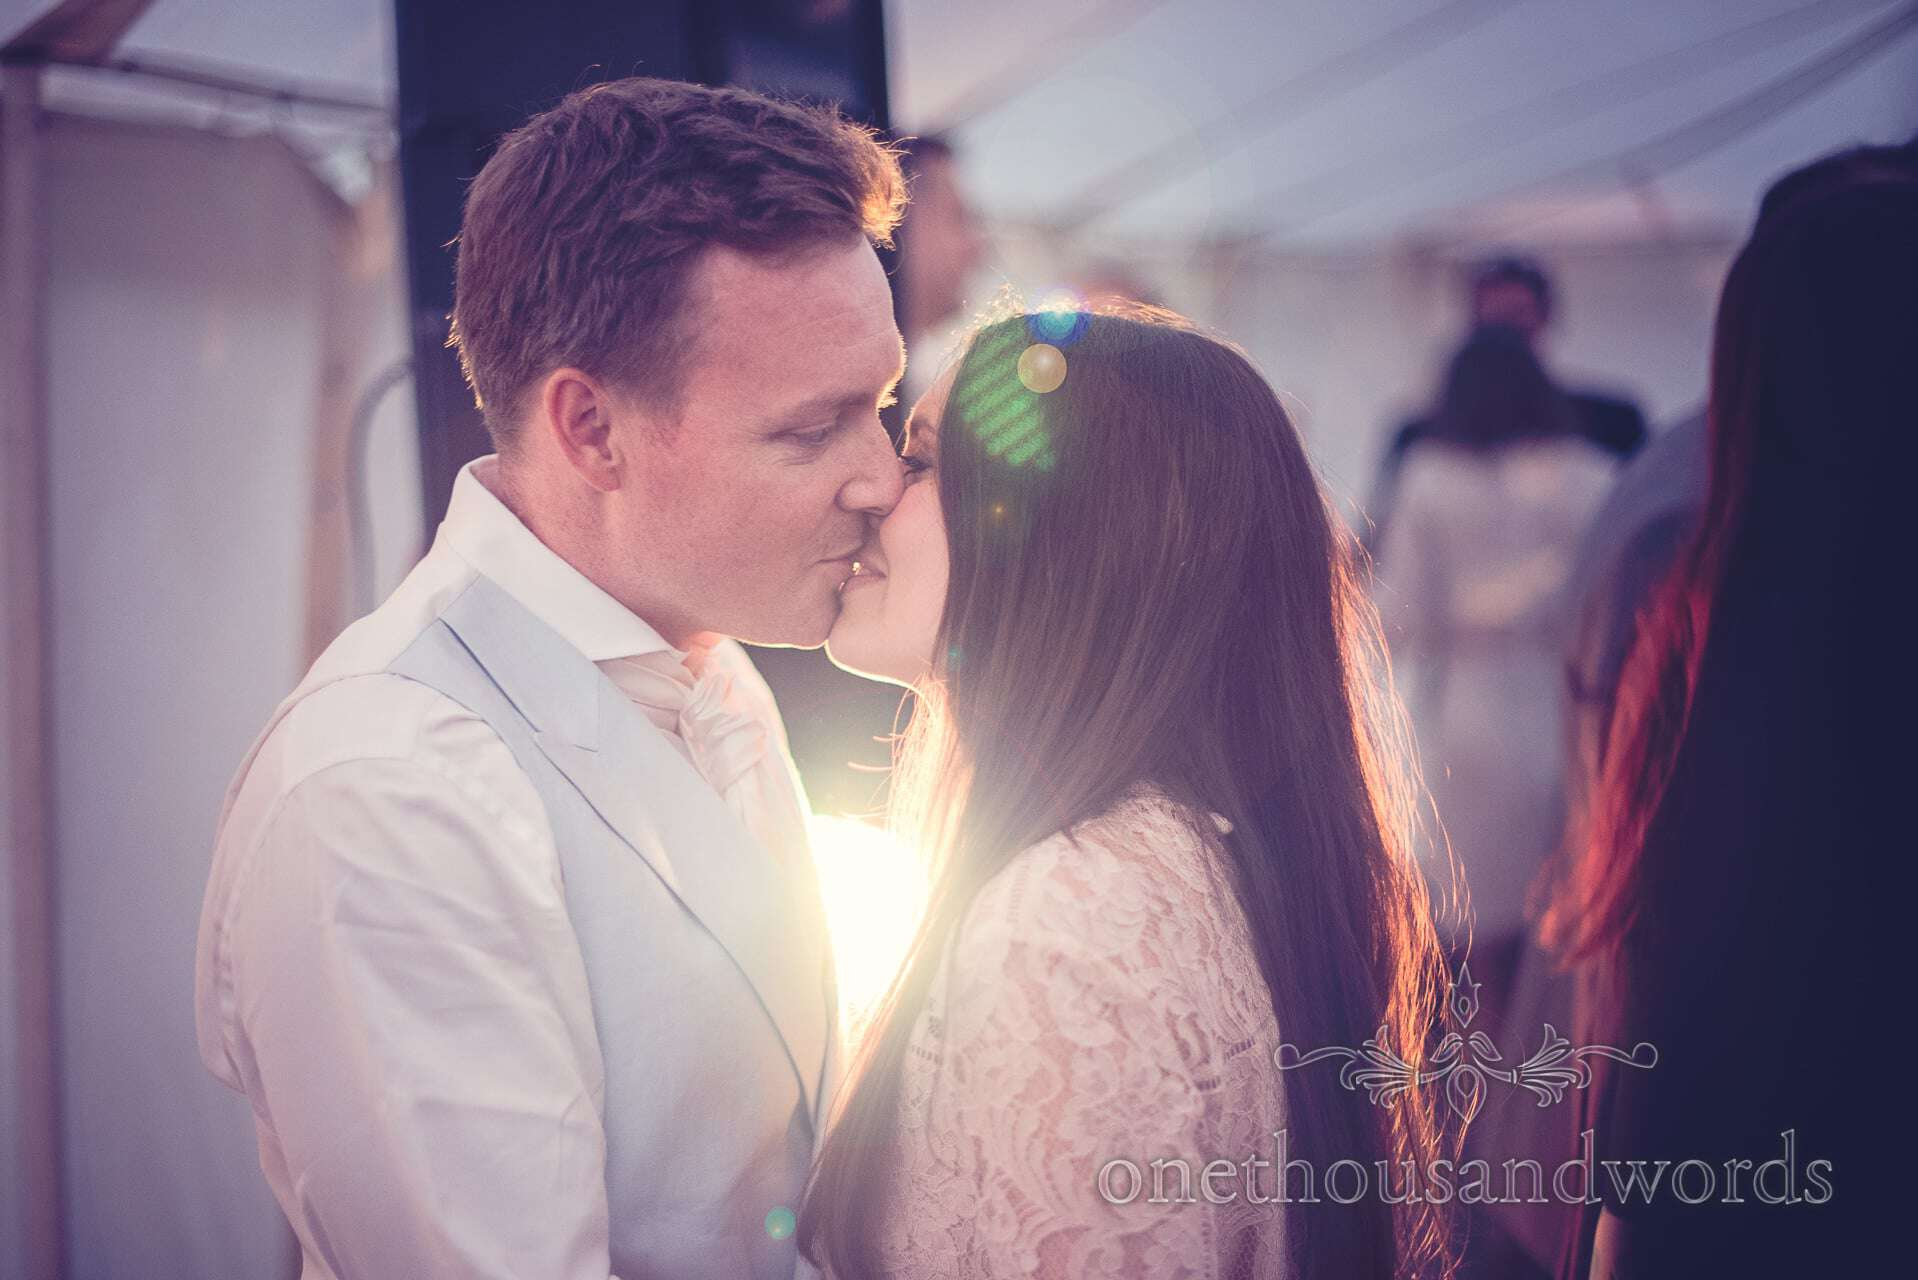 Wedding guests kiss during dancing at The Priory Wareham wedding